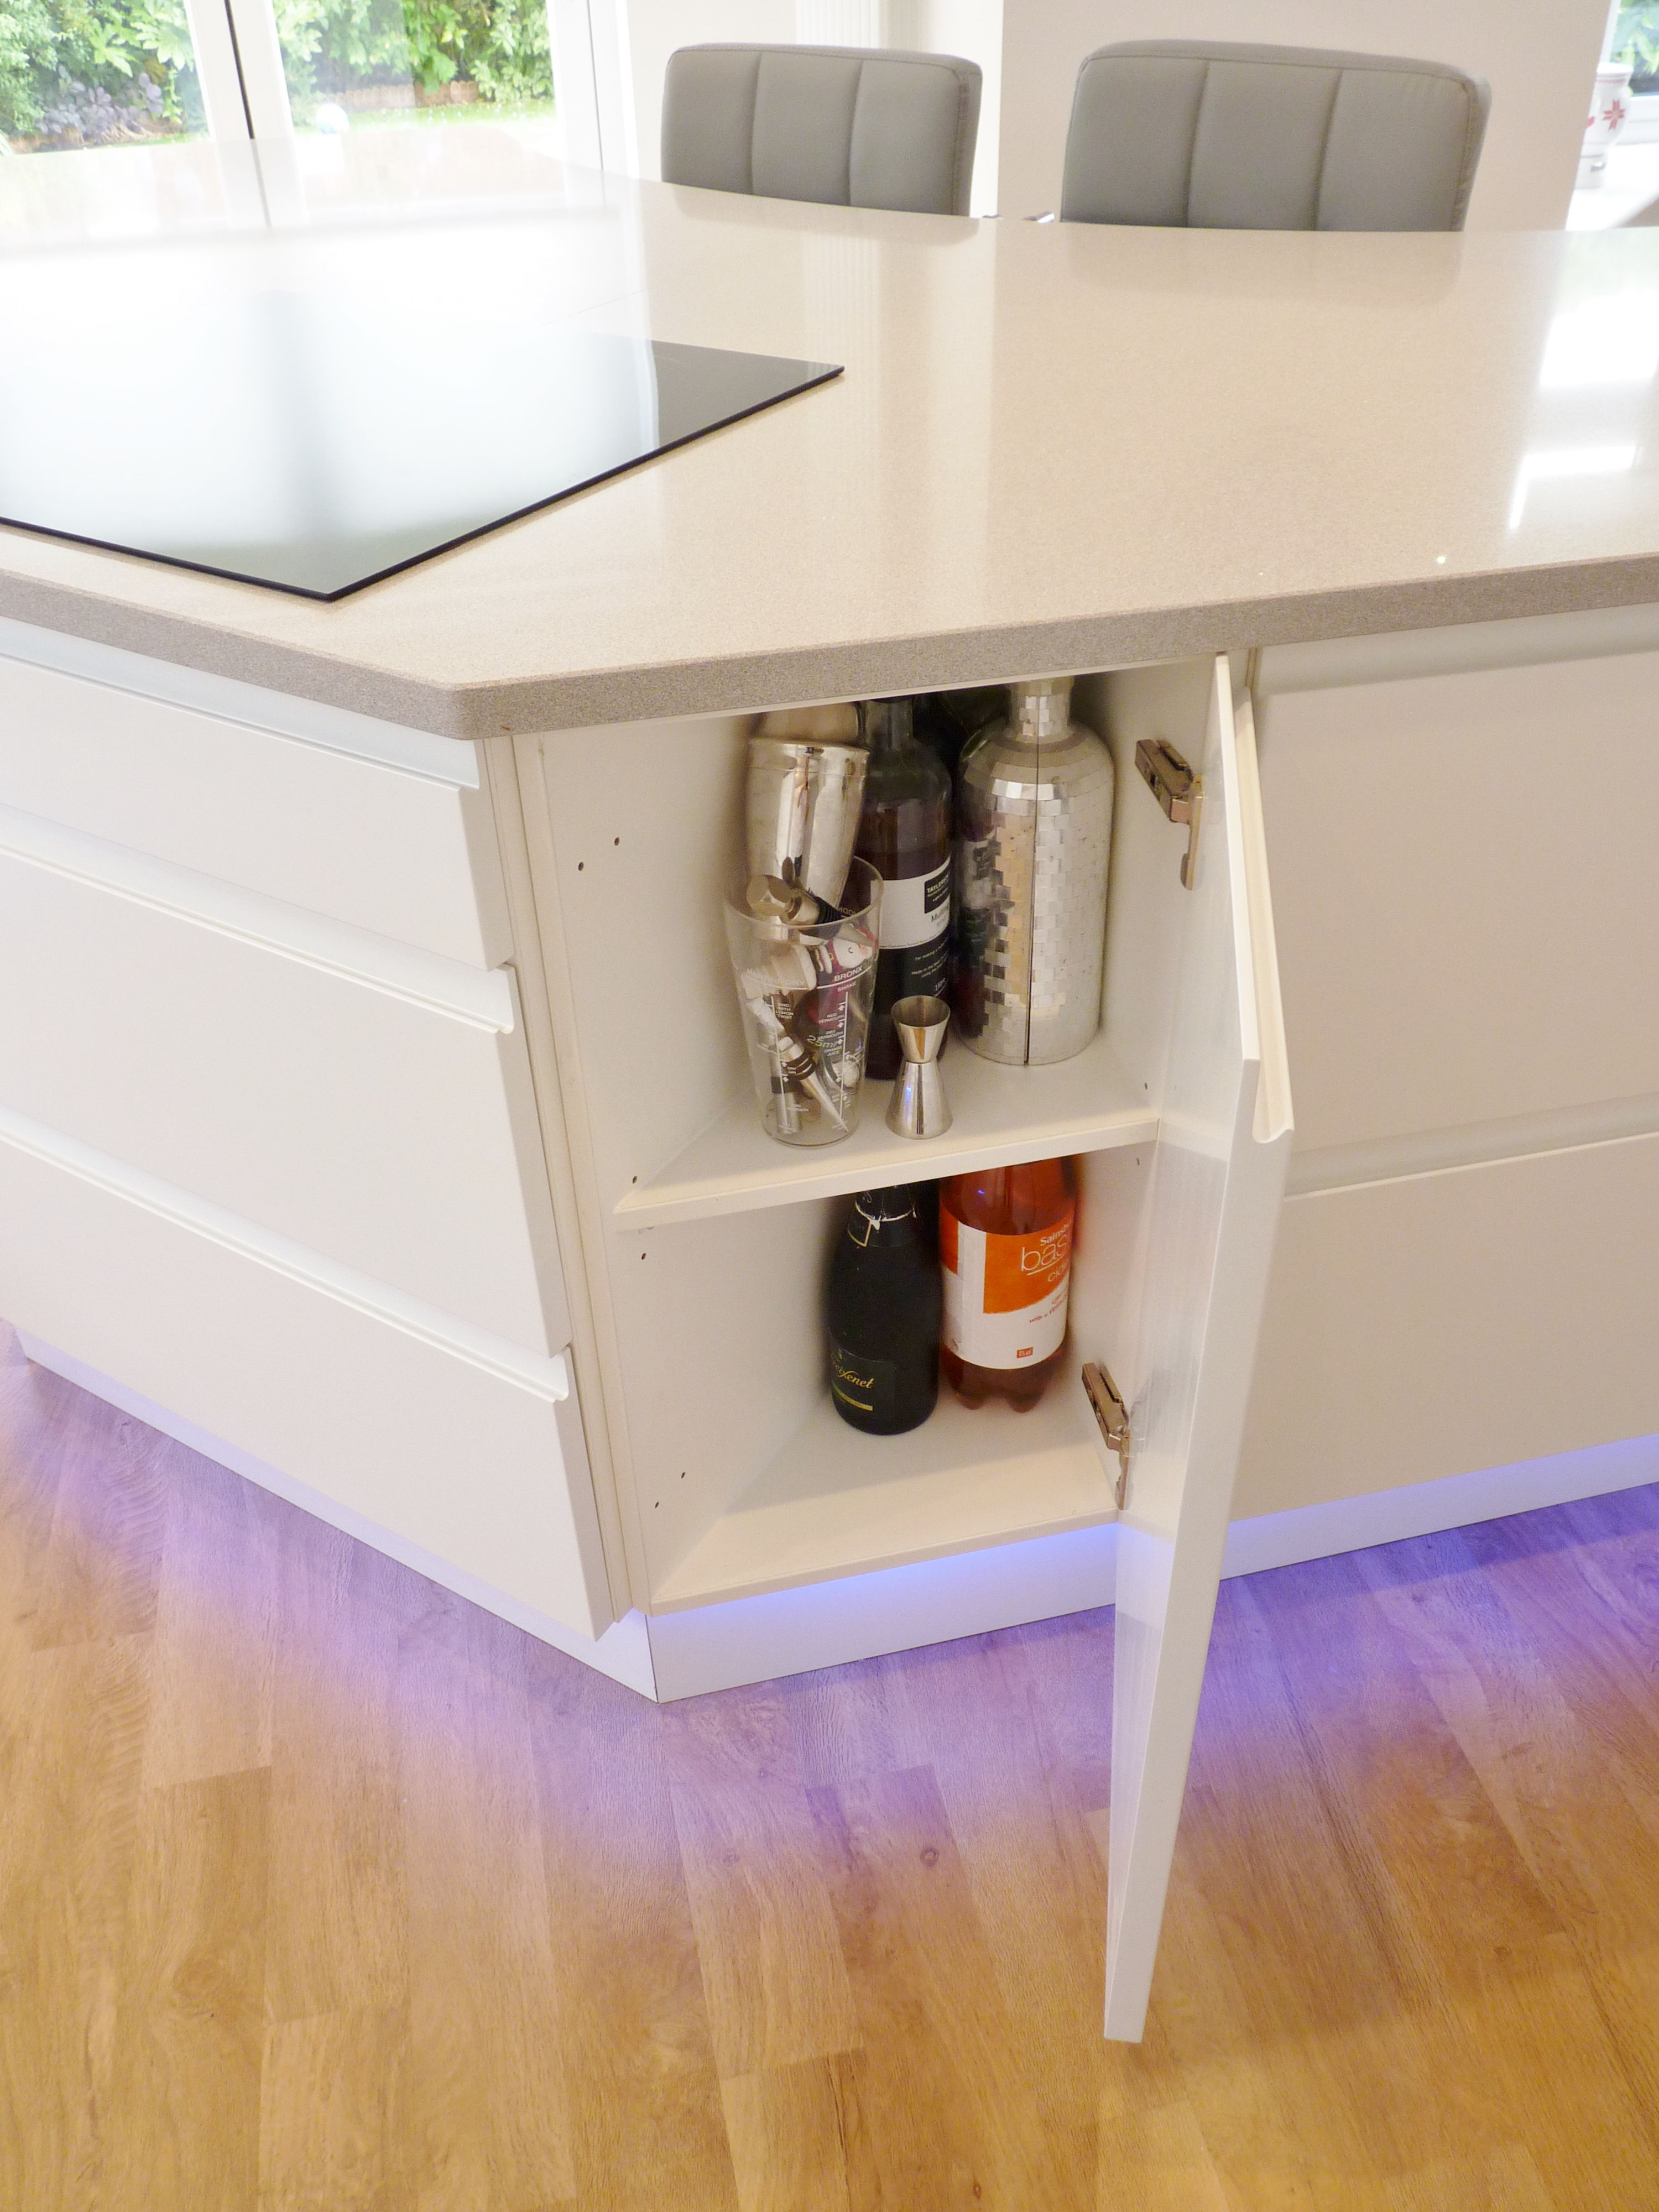 Splayed / Angled Base Cabinet   So Stylish And So Handy! By Dovetail  Kitchens (